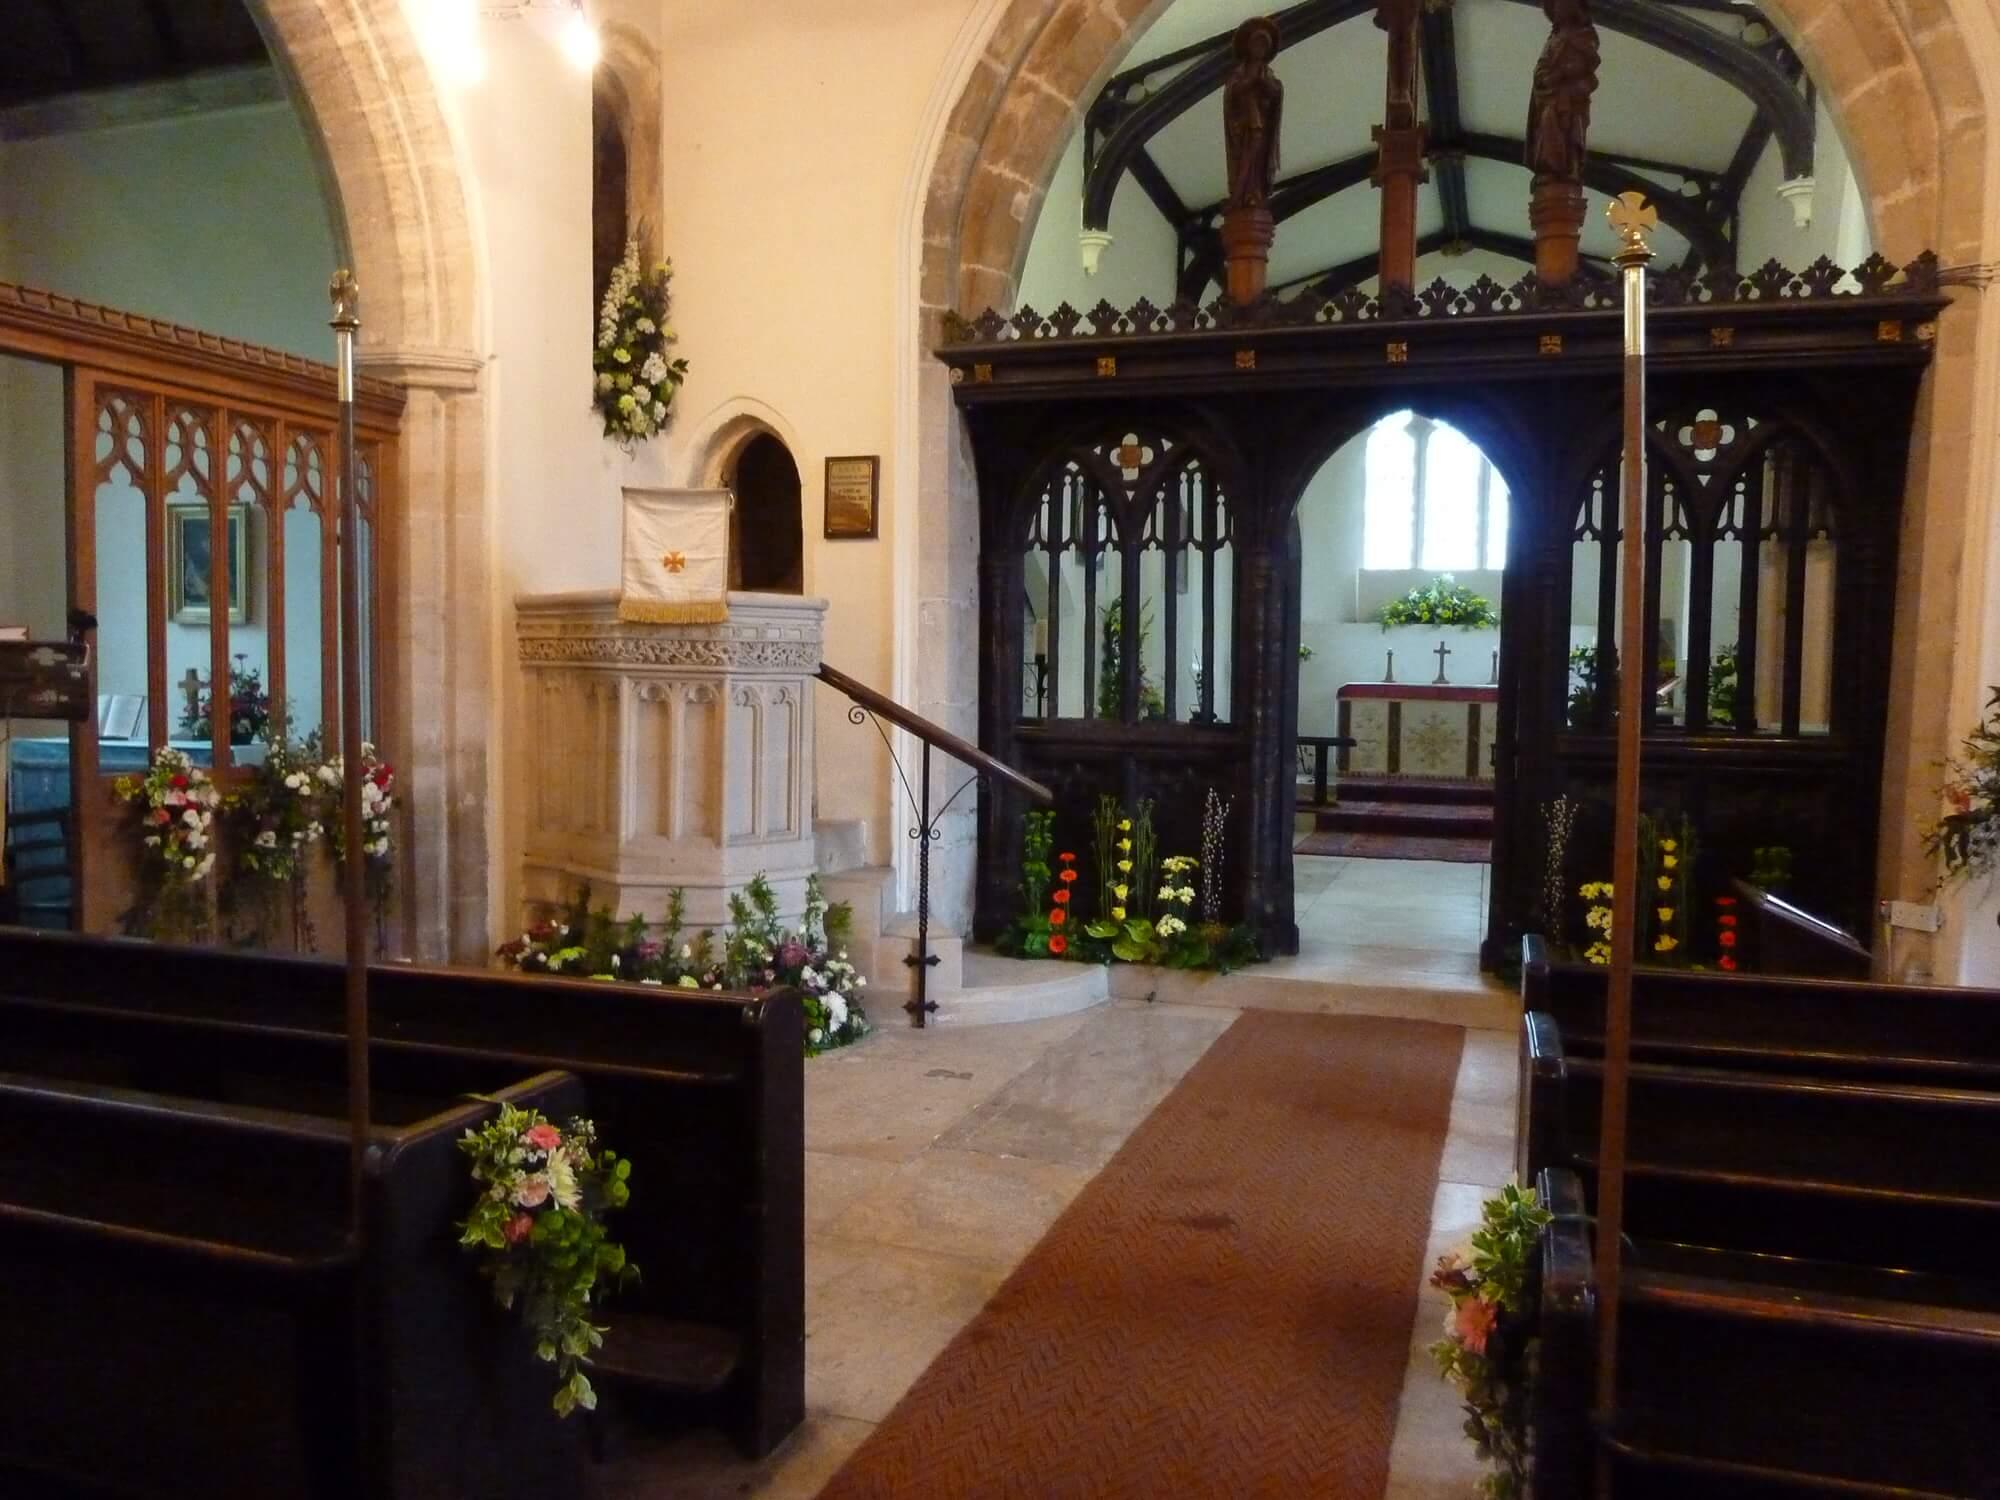 St Mary's Church Beverston - The Chancel